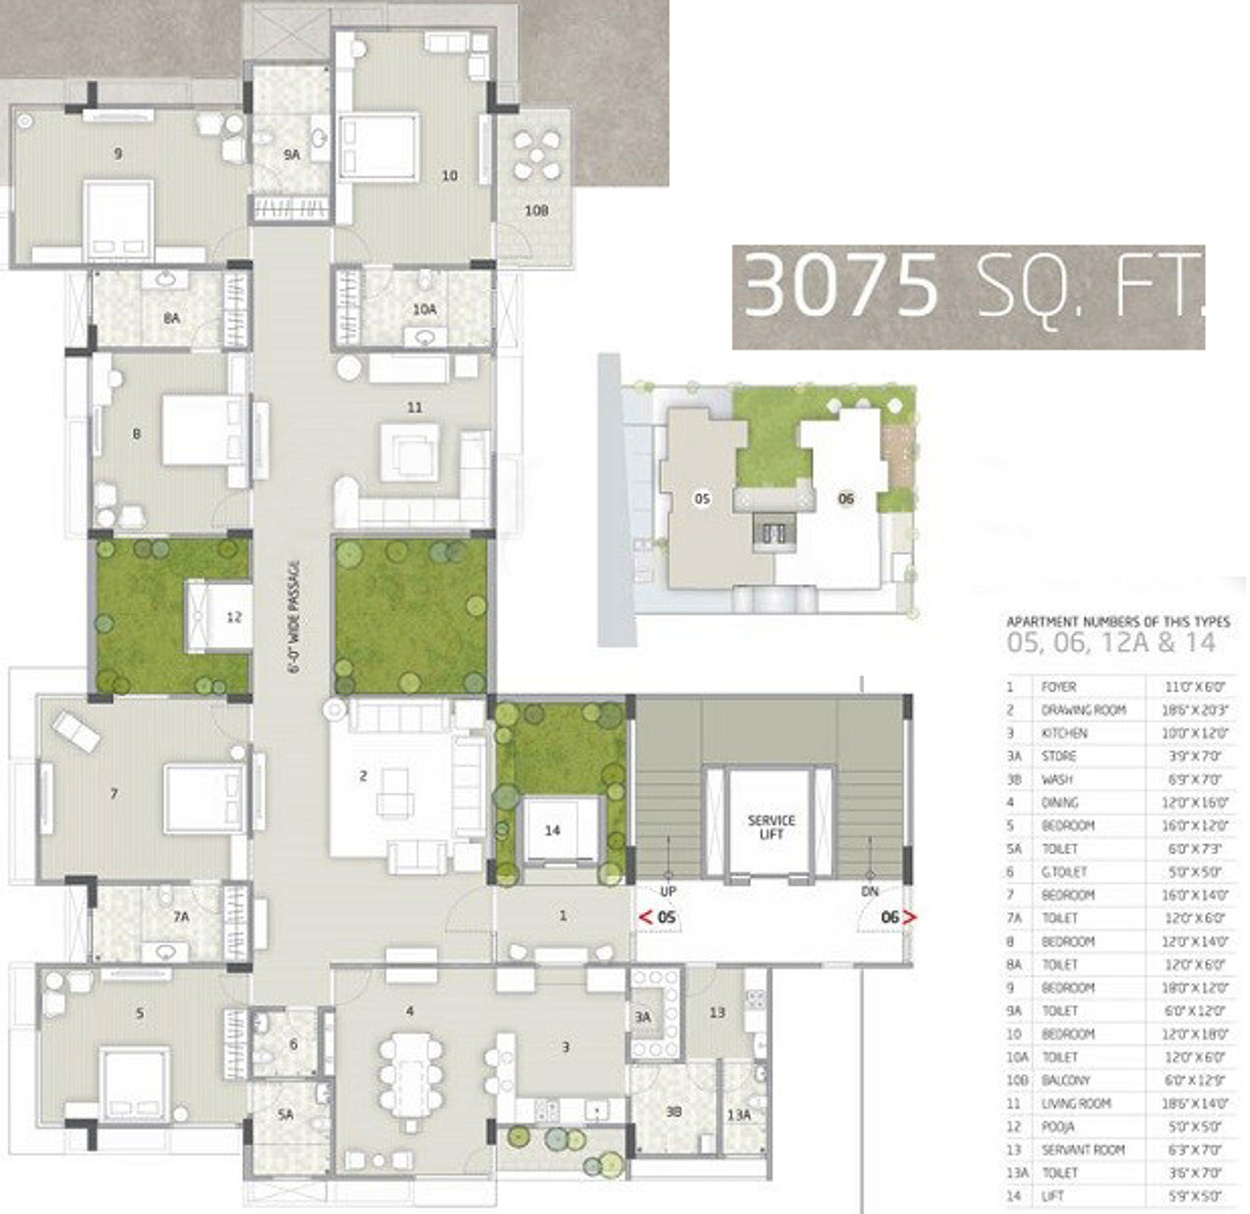 3075 Sq Ft 5 Bhk 6t Apartment For Sale In Rajyash Richmond